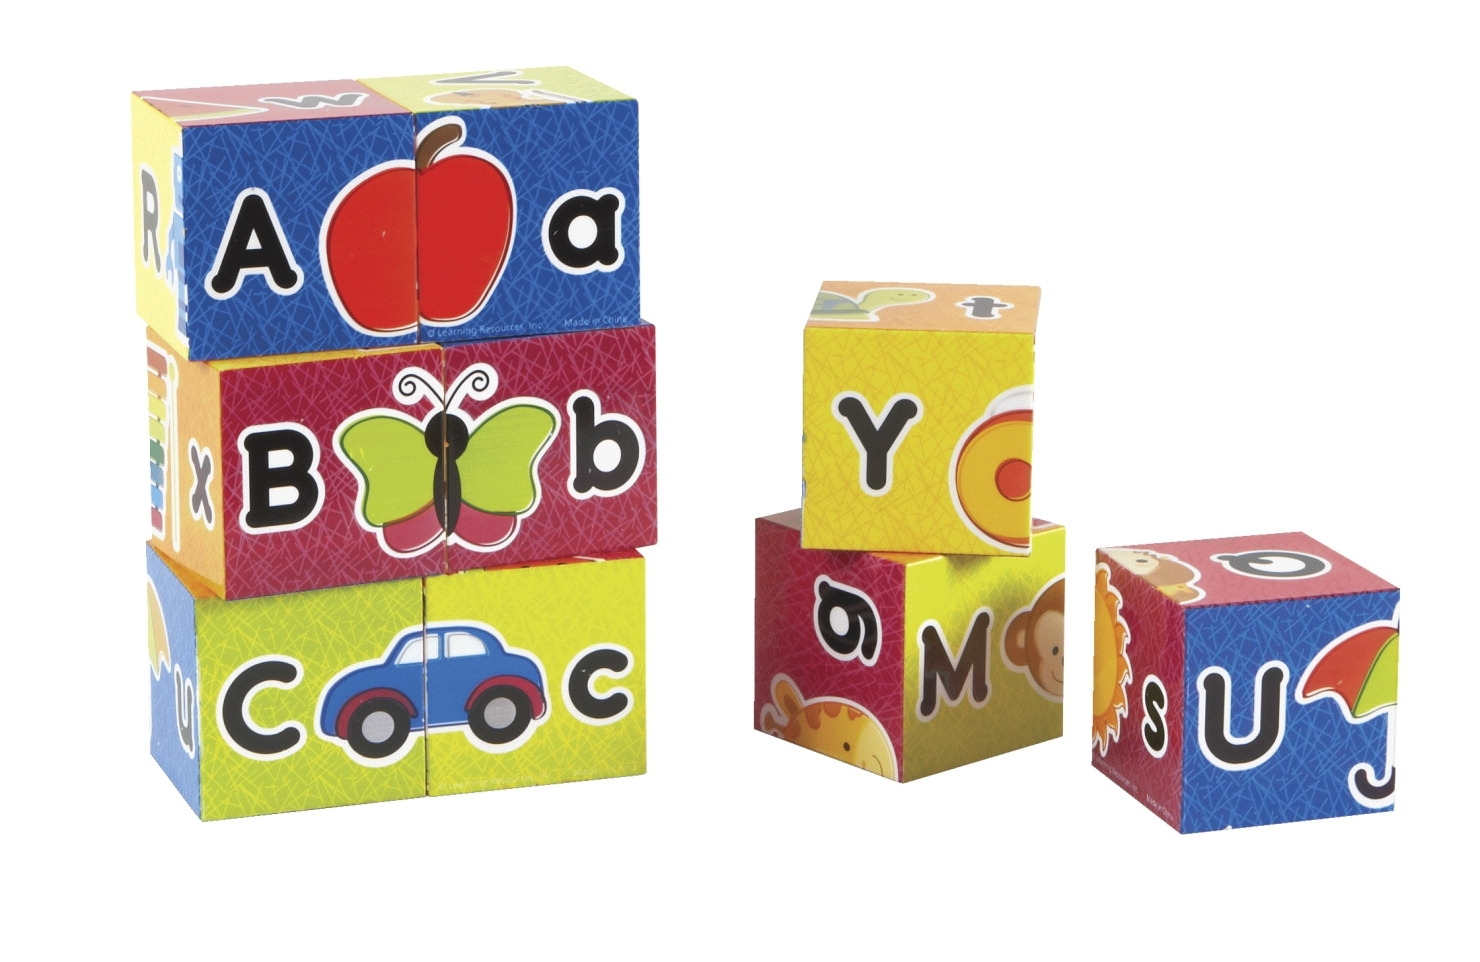 Learning: Classroom Reading & Writing Resources Alphabet Activities - 1533668 - Learning Resources Alphabet Puzzle Blocks; Ages 2 And Above; Set Of 9 1533668